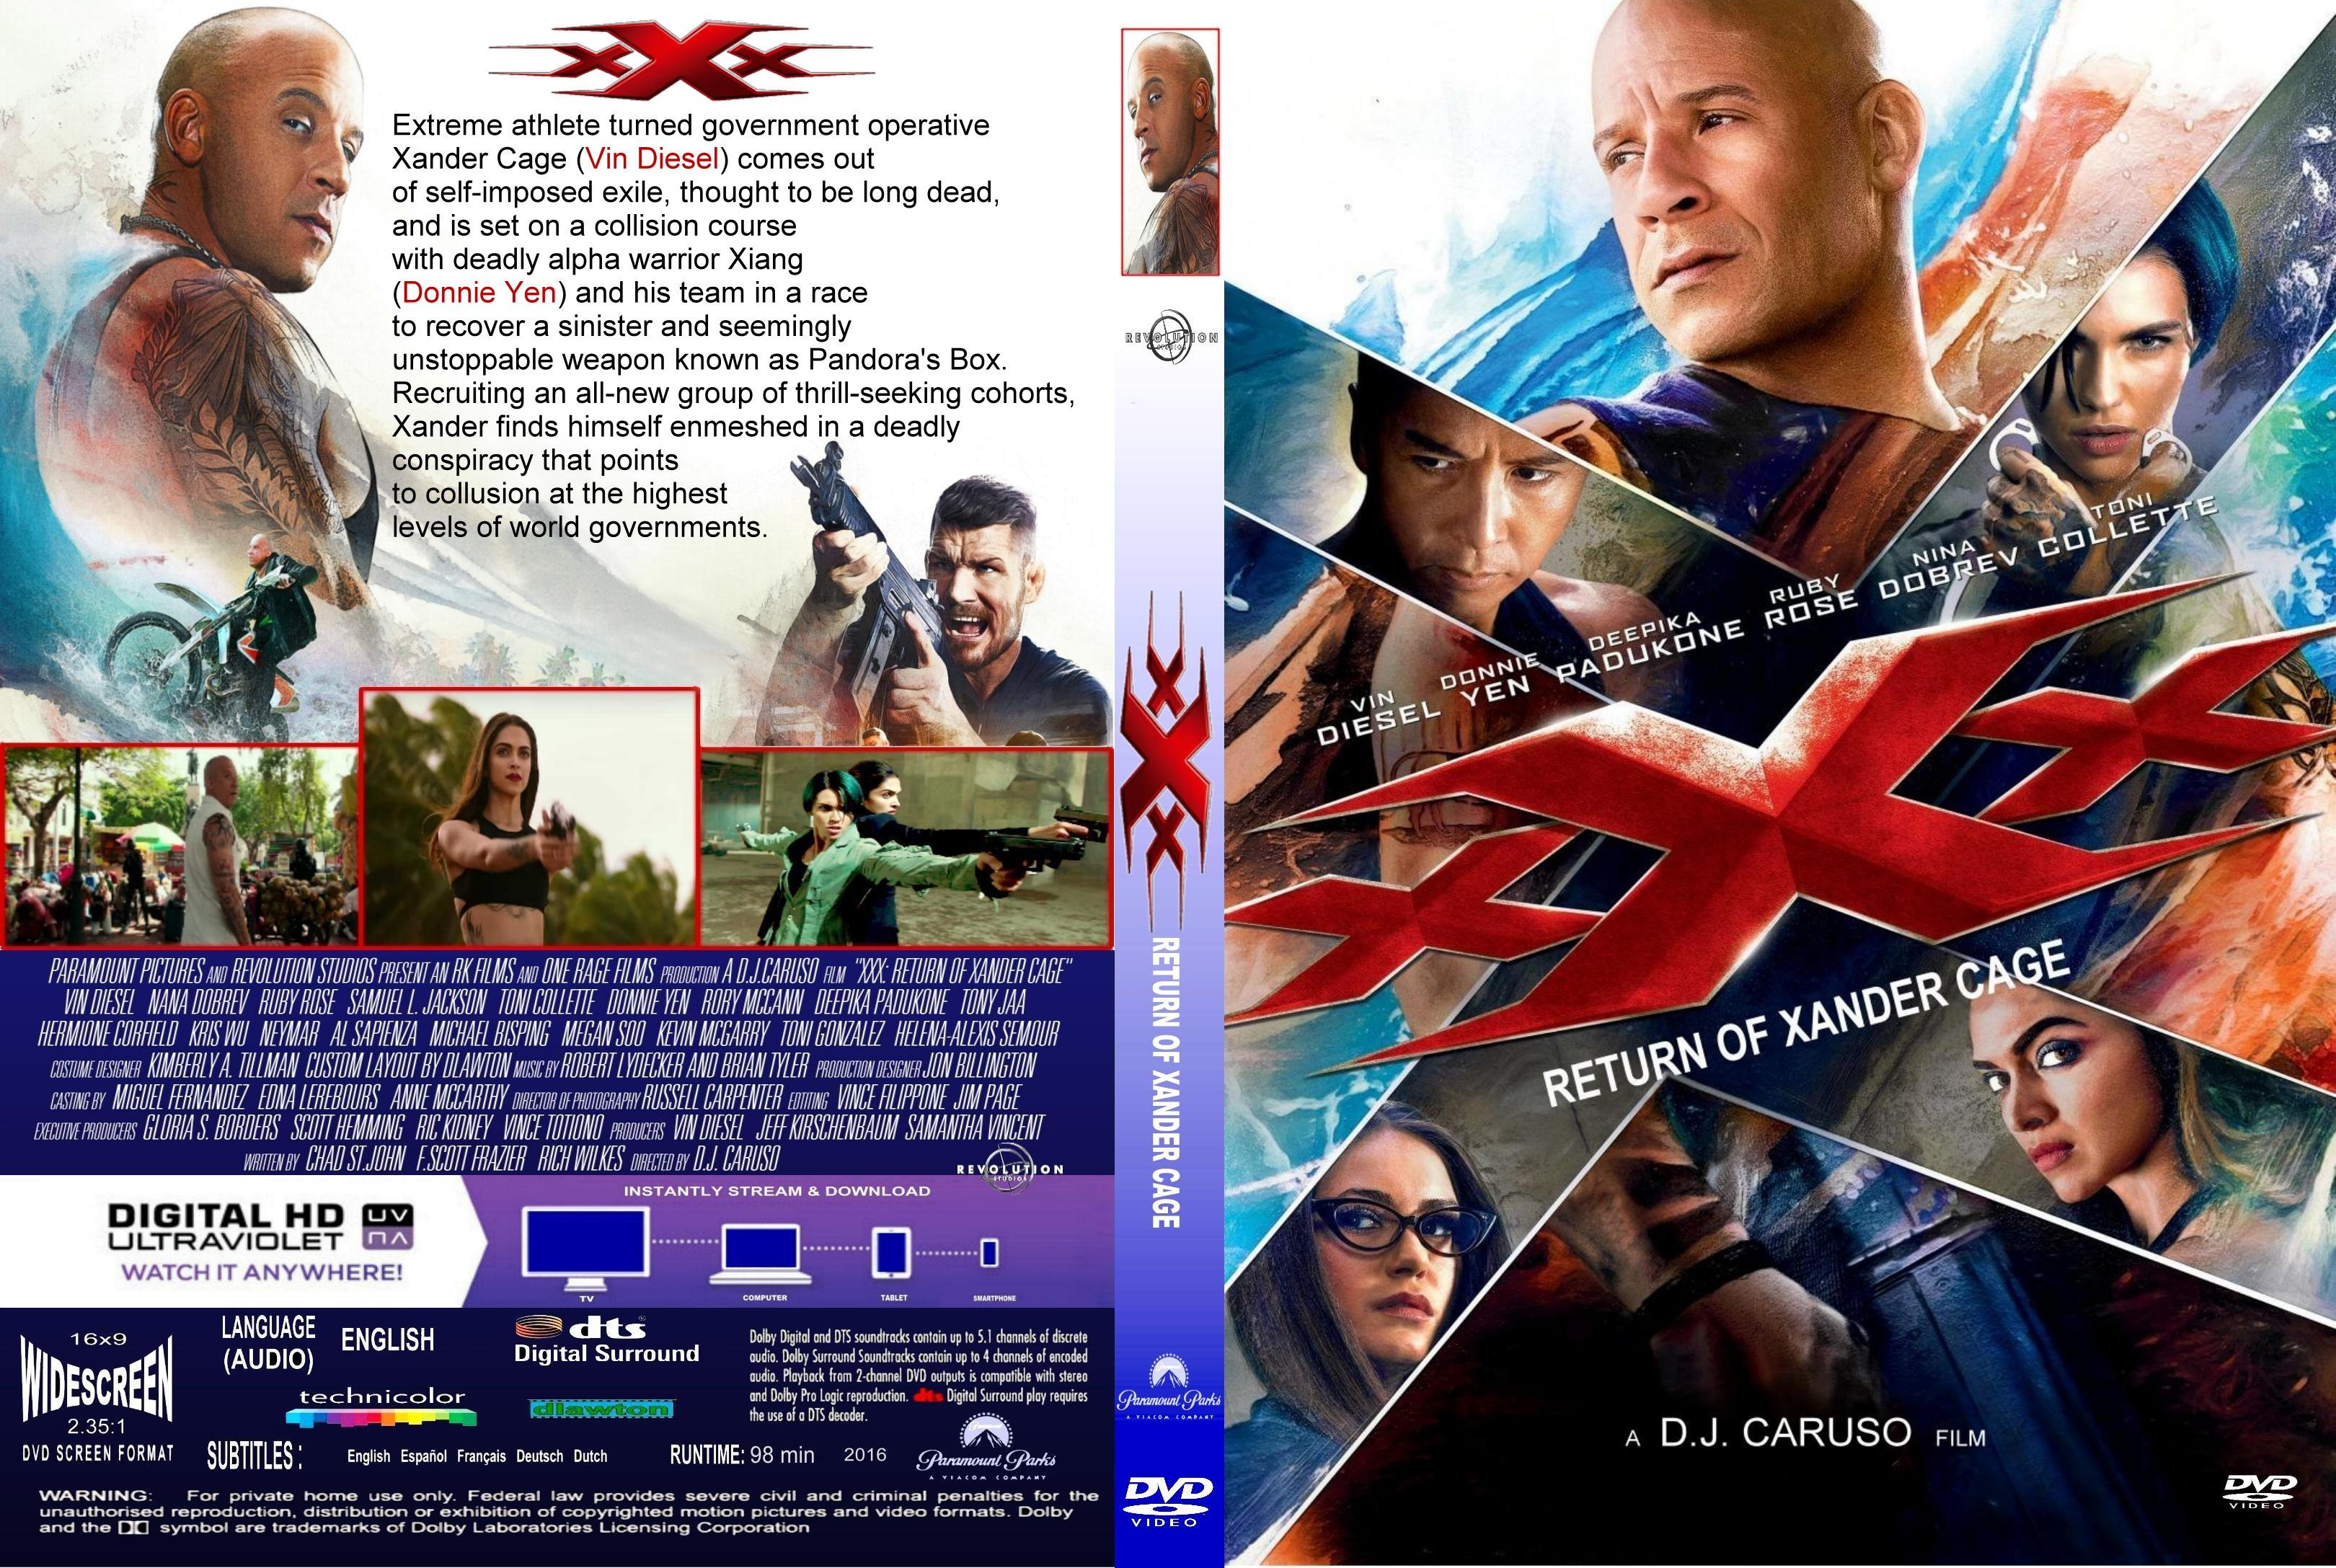 Xxx Return Of Xander Cage 2017 Front Dvd Covers Cover Century Over 500 000 Album Art Covers For Free